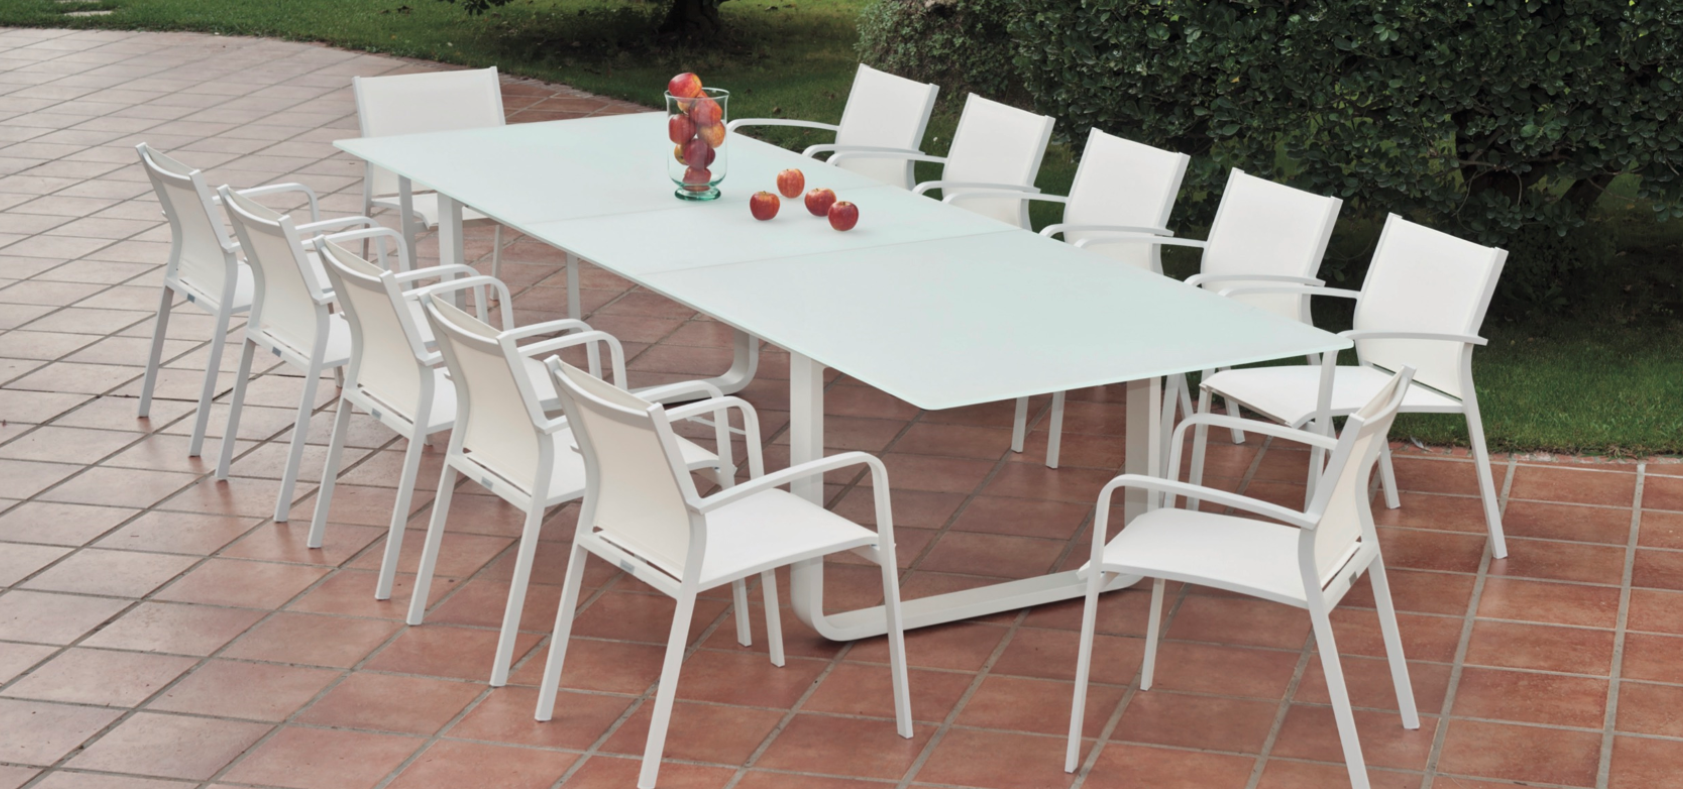 Averon Contemporary Modern Outdoor White Gl Extendable Dining Table 12 People Contract Hospitality Hotel Restuarant Beach